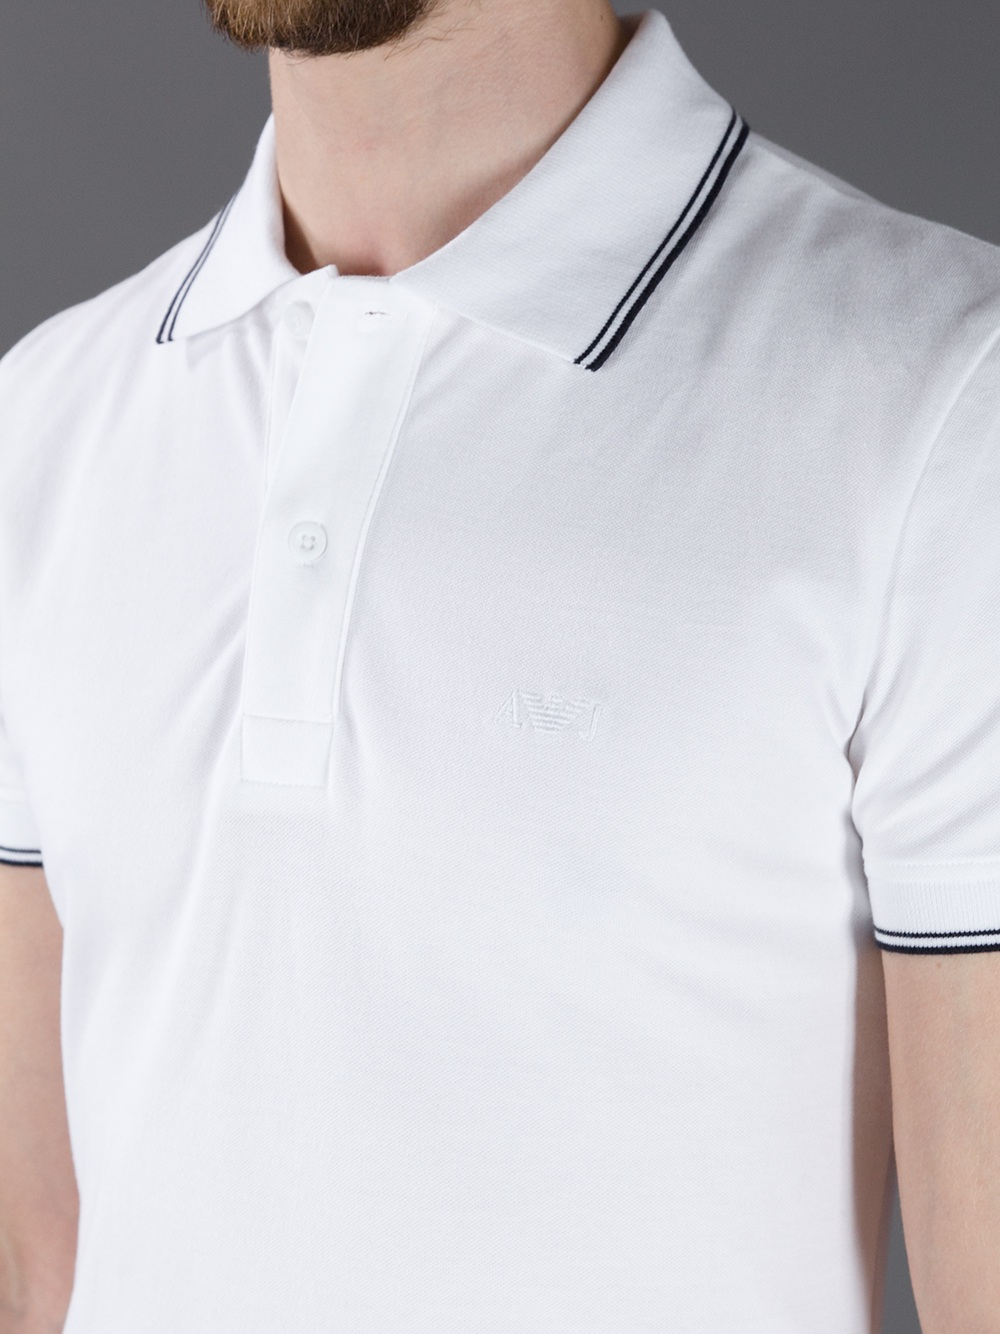 Lyst armani jeans short sleeve fitted polo shirt in for White fitted polo shirts